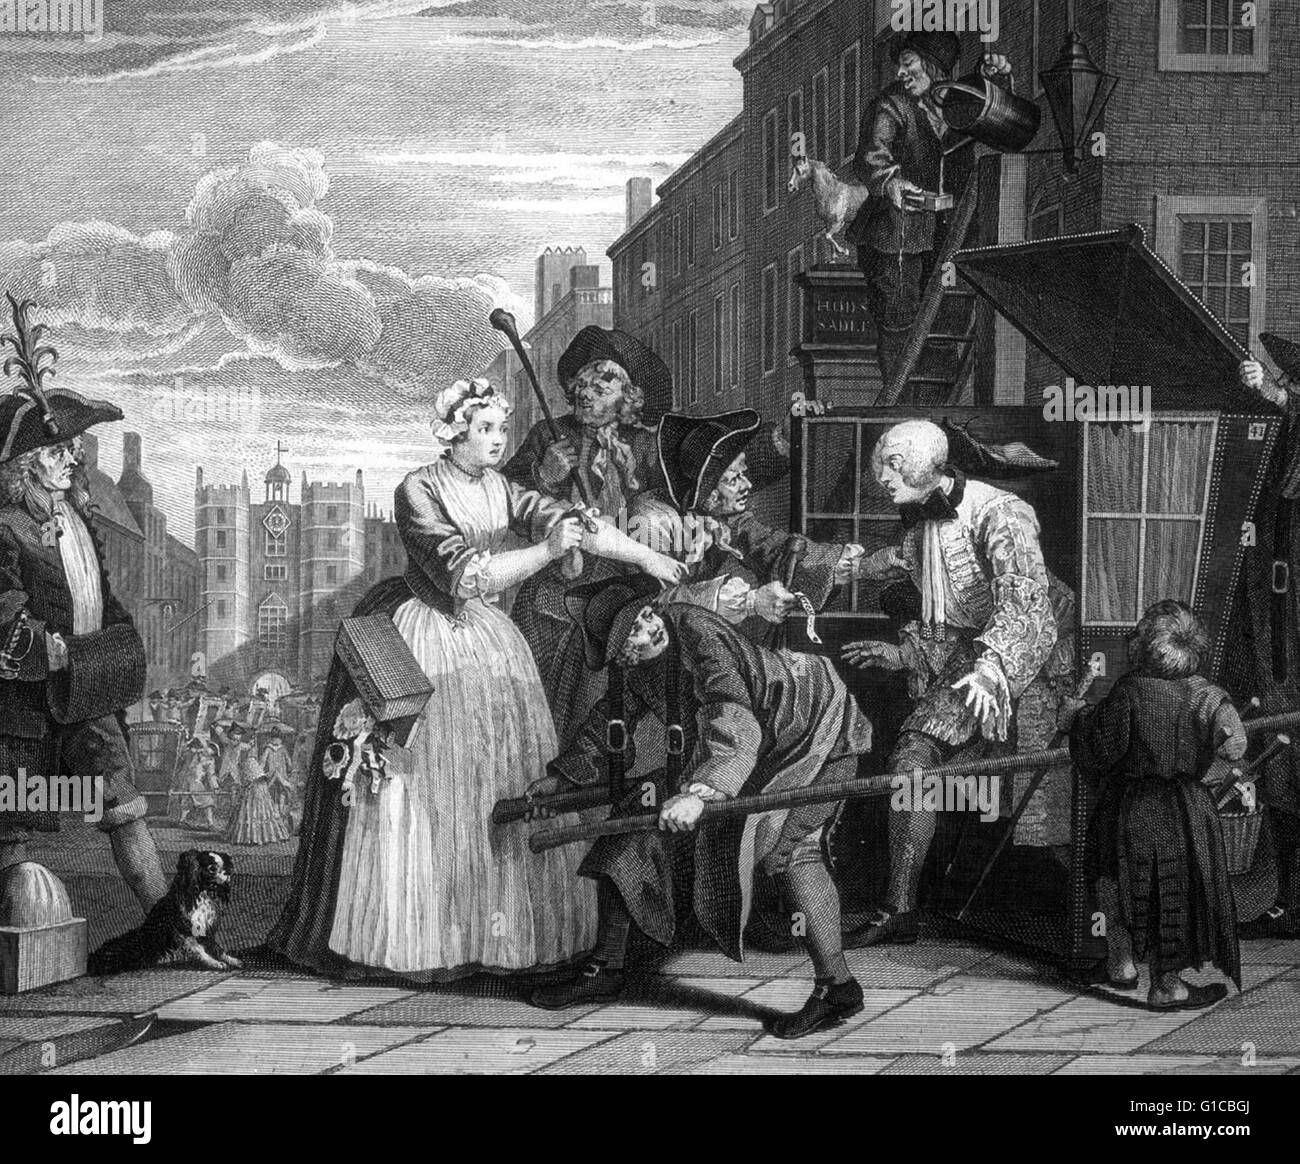 Arrested For Debt. from 'A Rake's Progress' 1735, By William Hogarth (1697 – 1764). English painter, - Stock Image